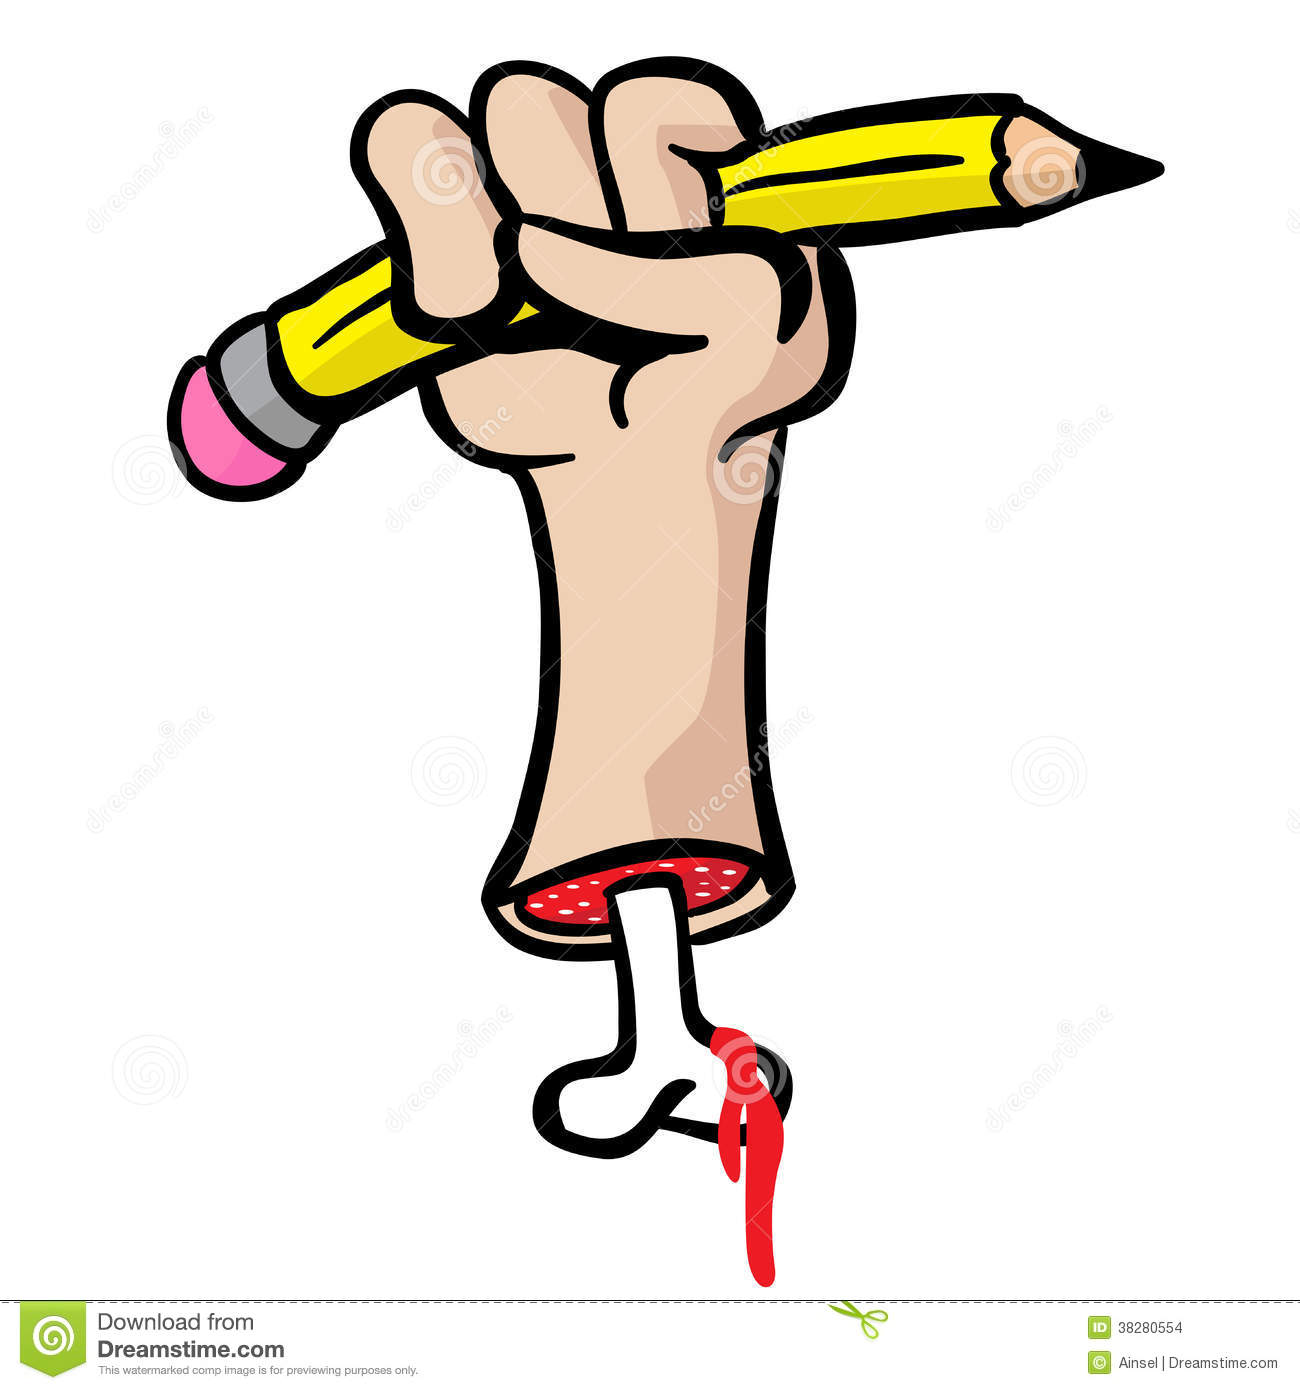 Cut Hand With Bone Holding A Pencil Stock Illustration.